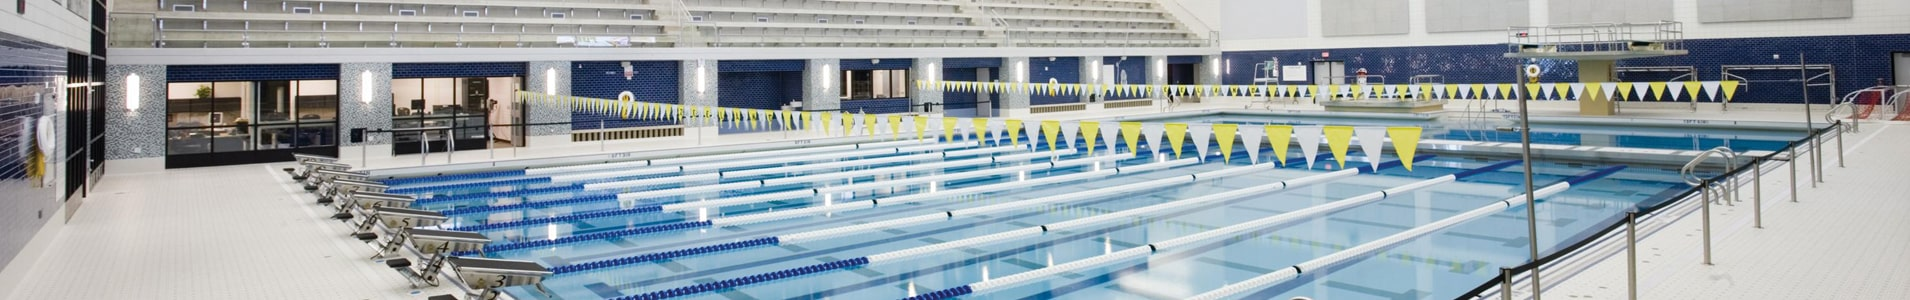 Image of an athletic facility serviced through our National Accounts.